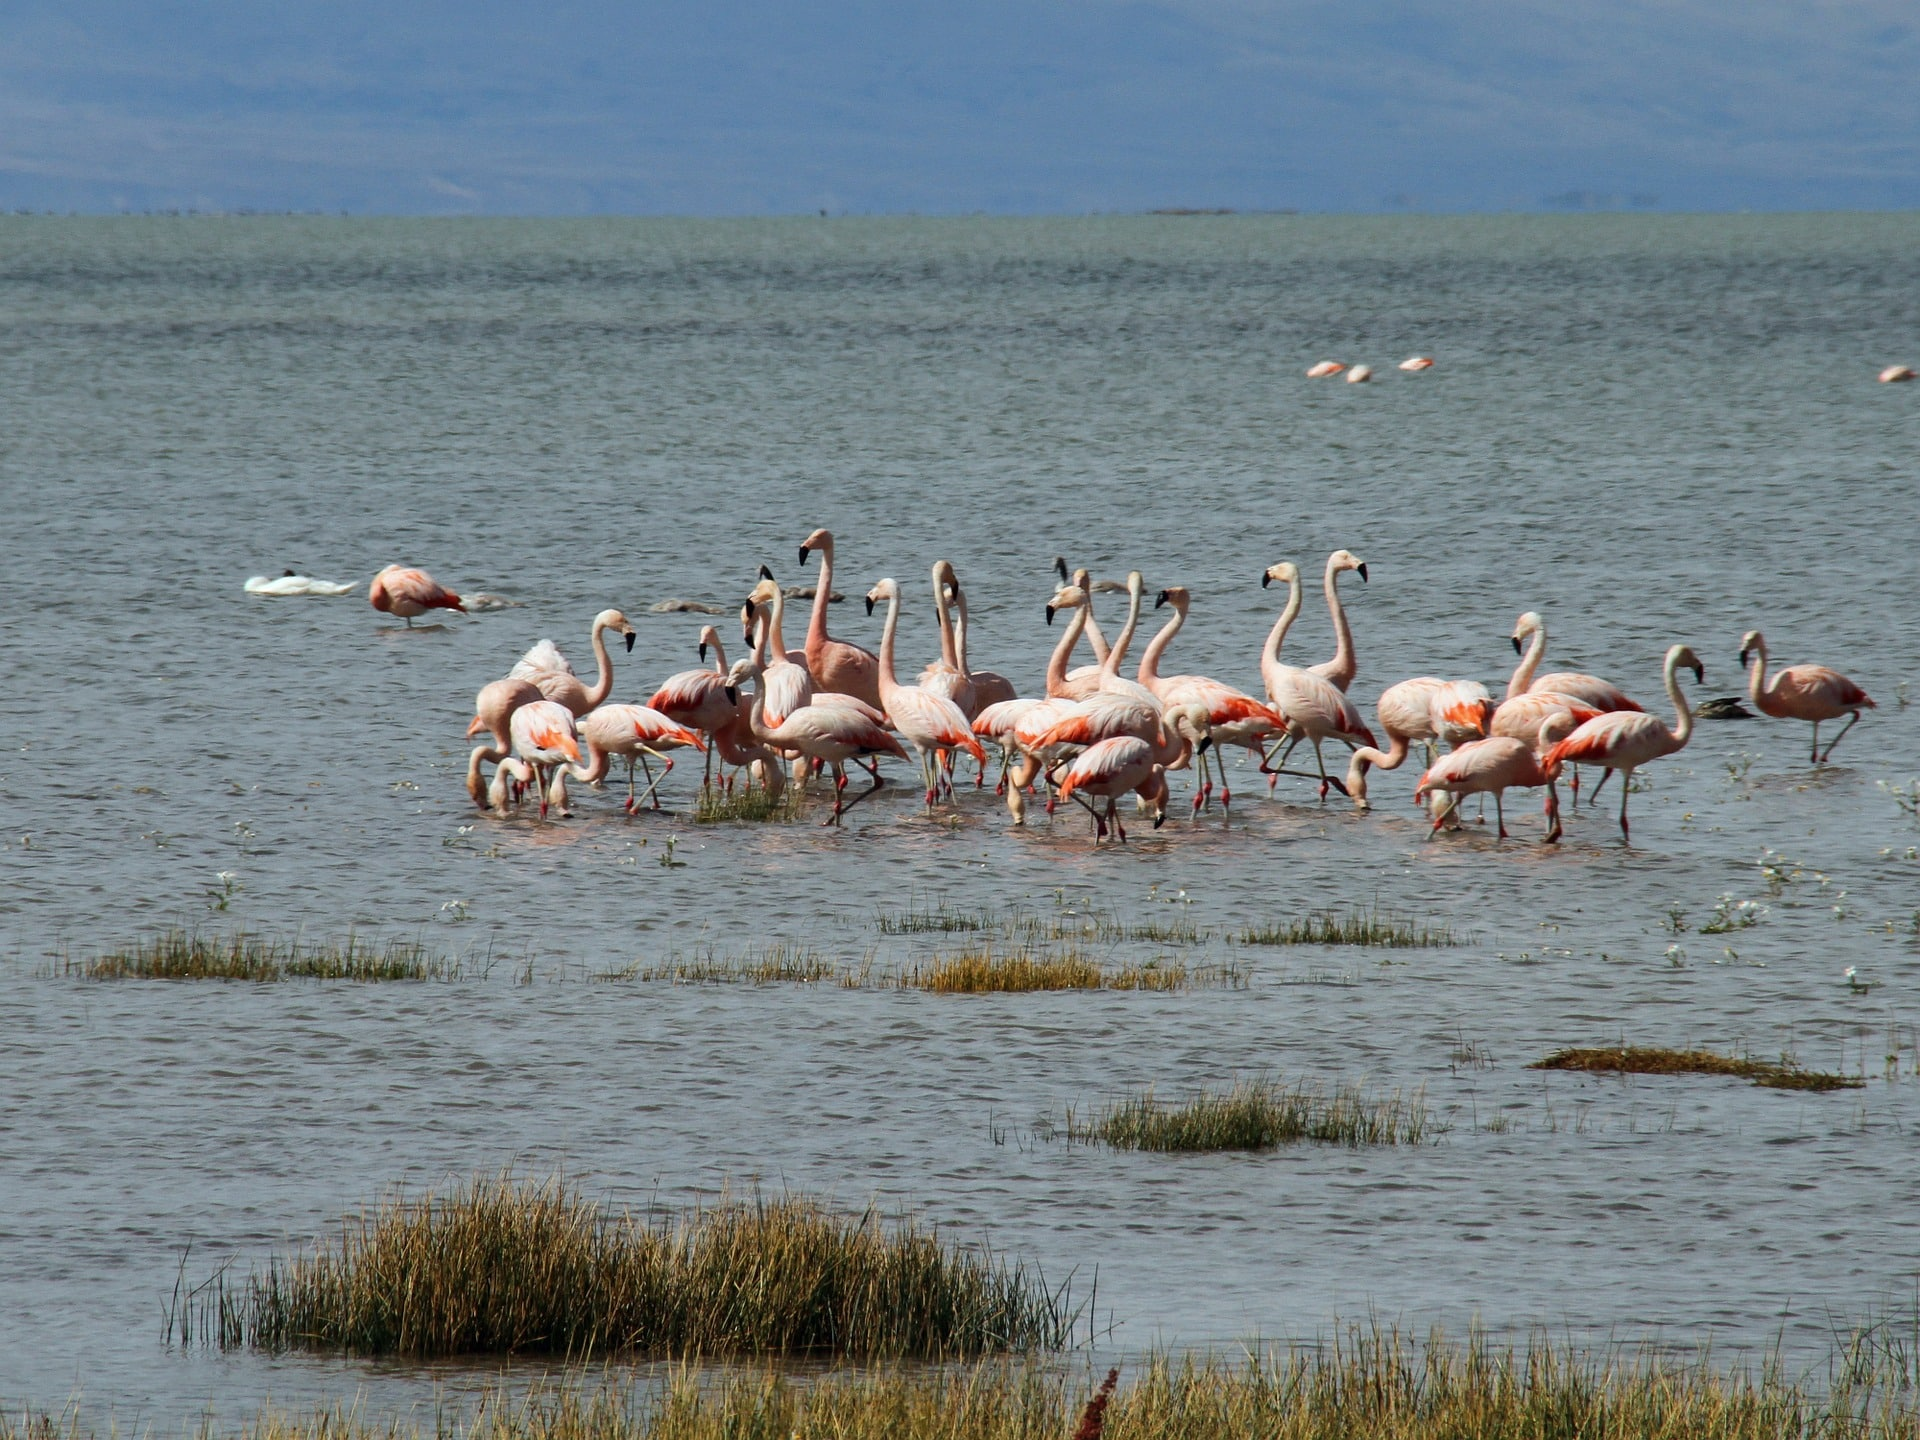 Flamants roses de Patagonie